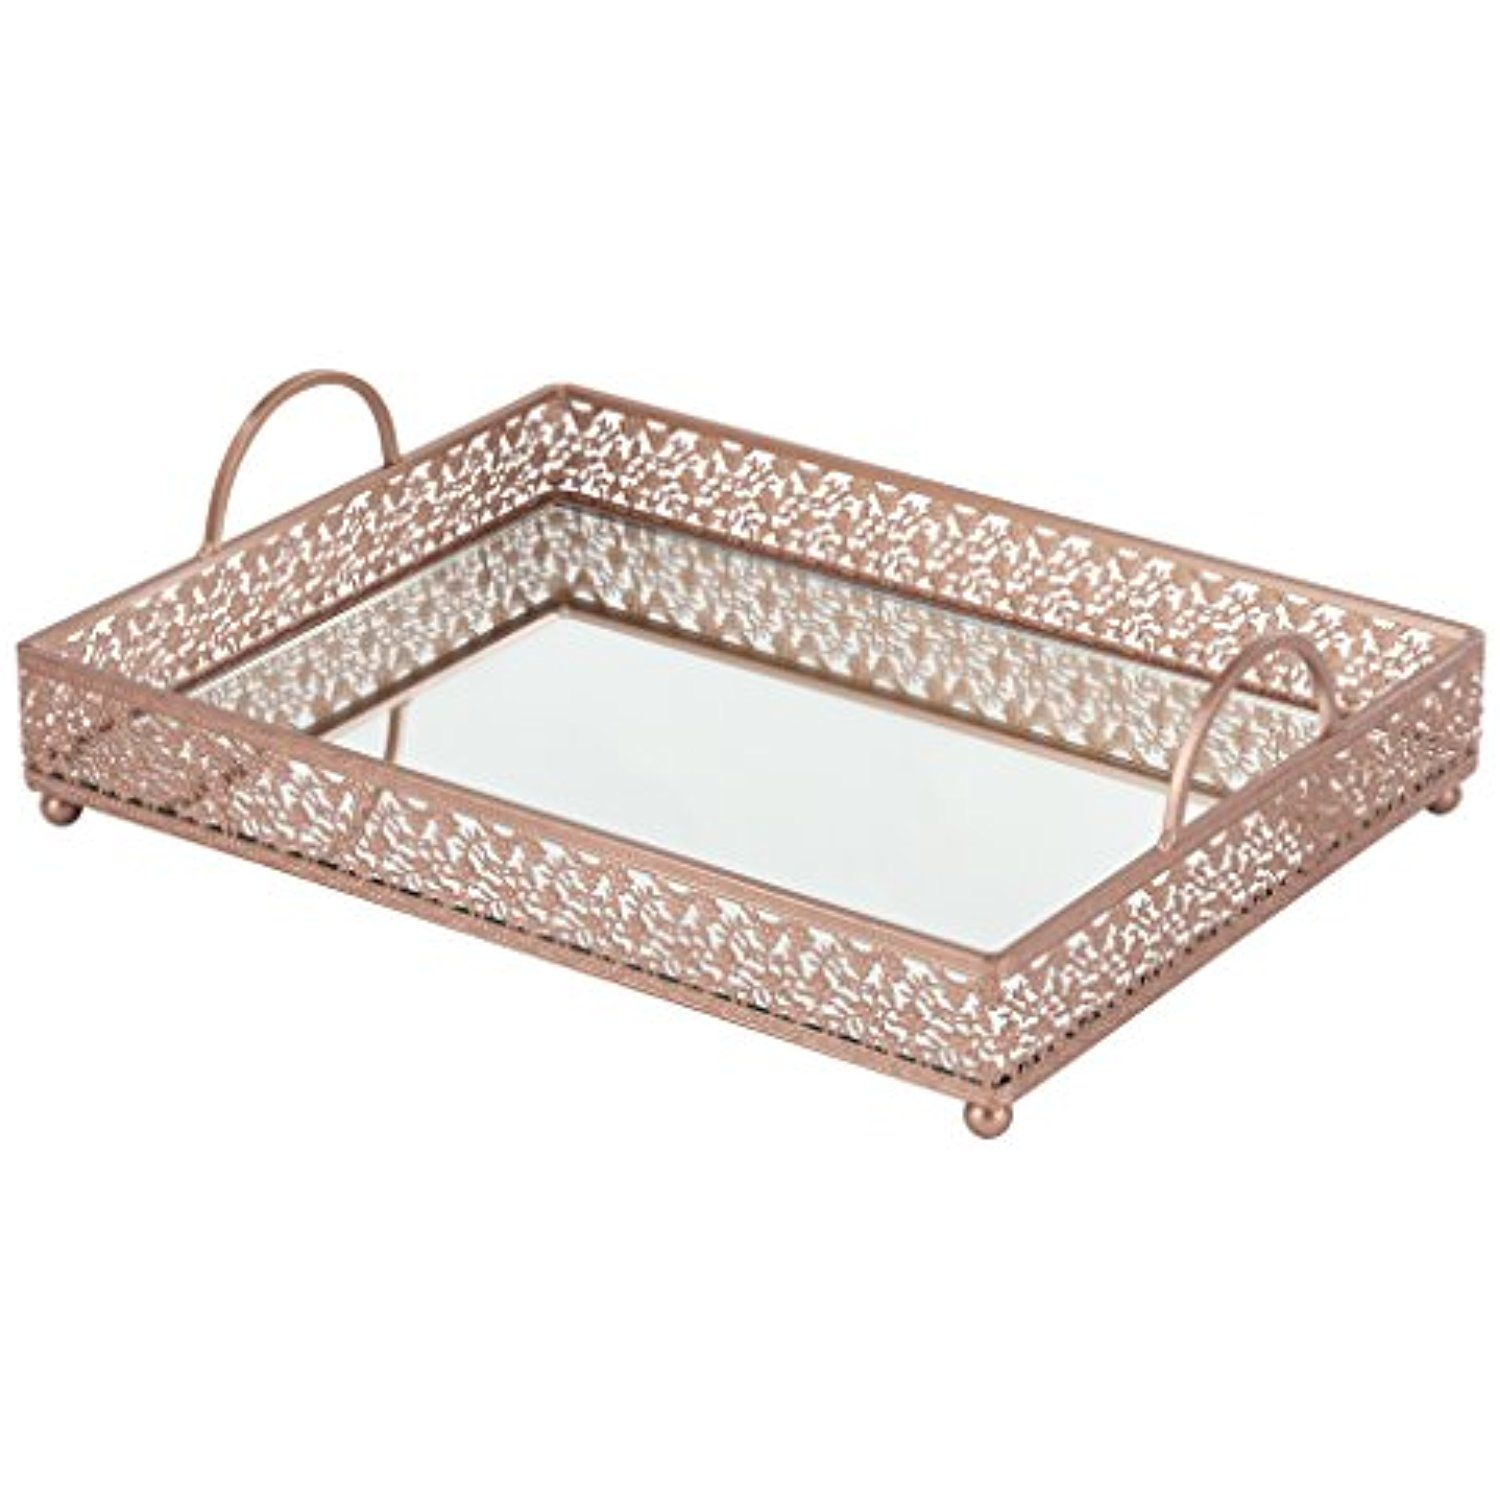 Giovanni rose gold mirror top serving tray rectangular metal ornate